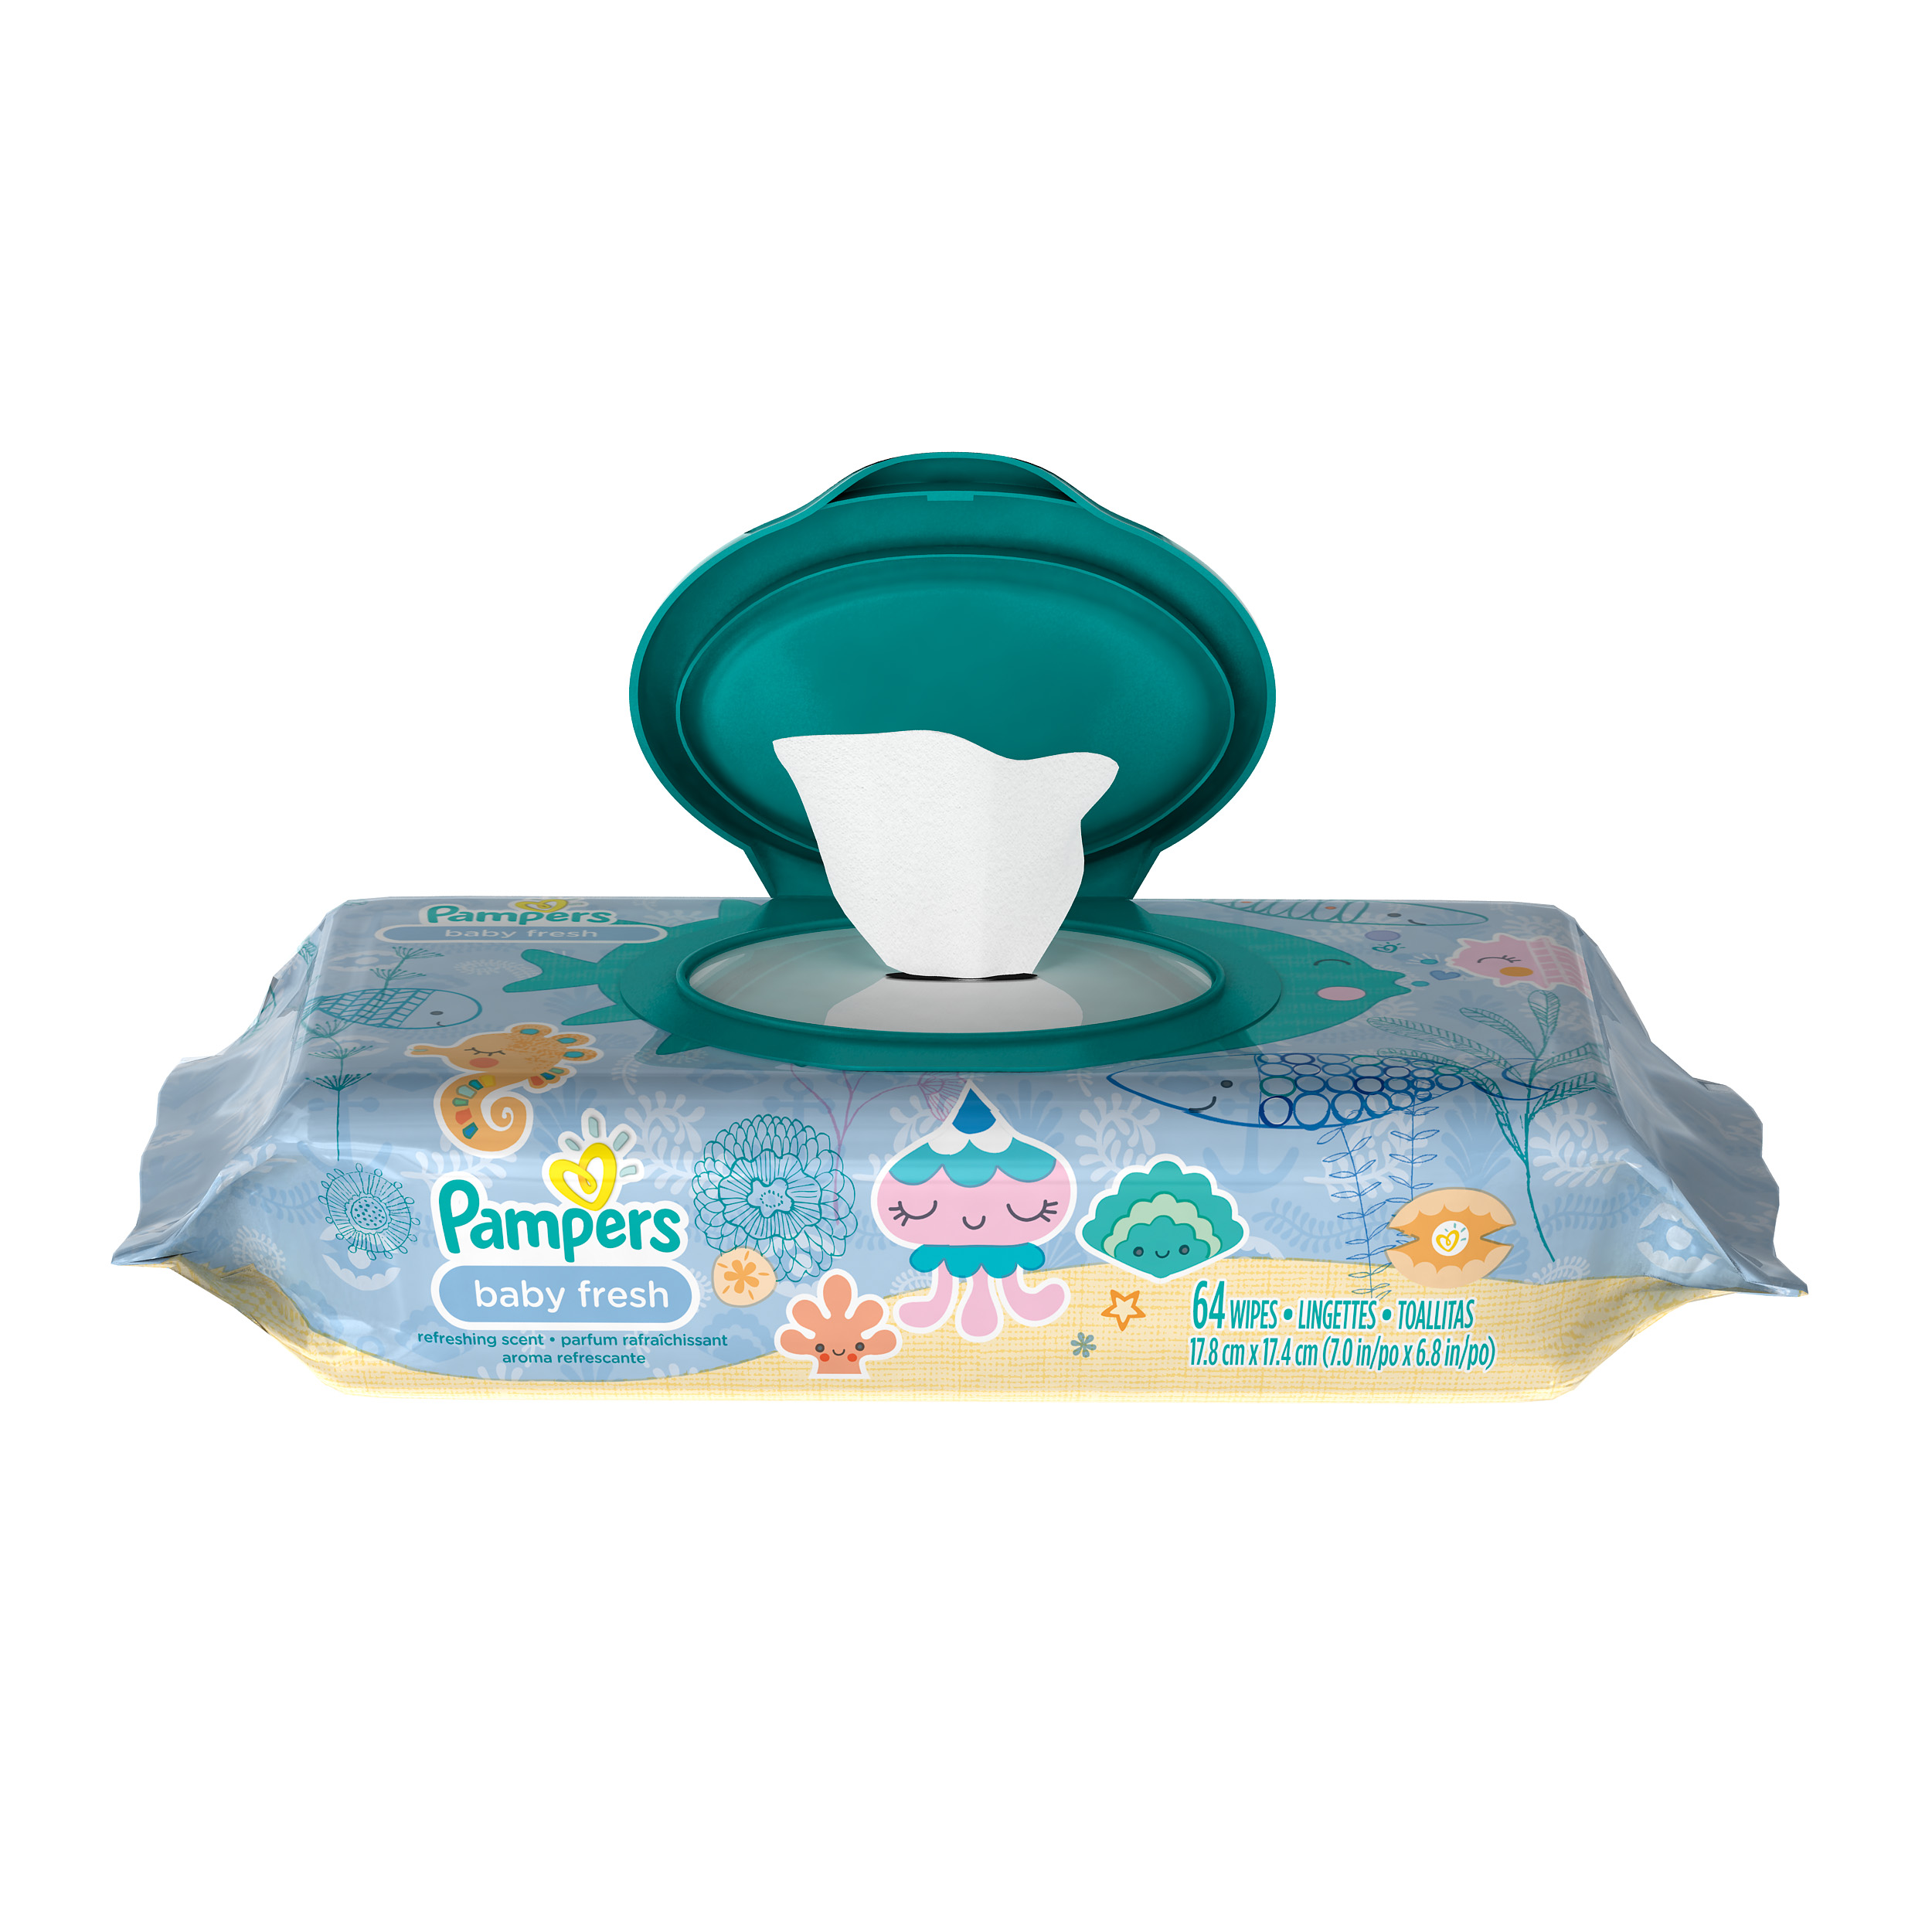 Pampers Baby Wipes Baby Fresh 1X 64 count